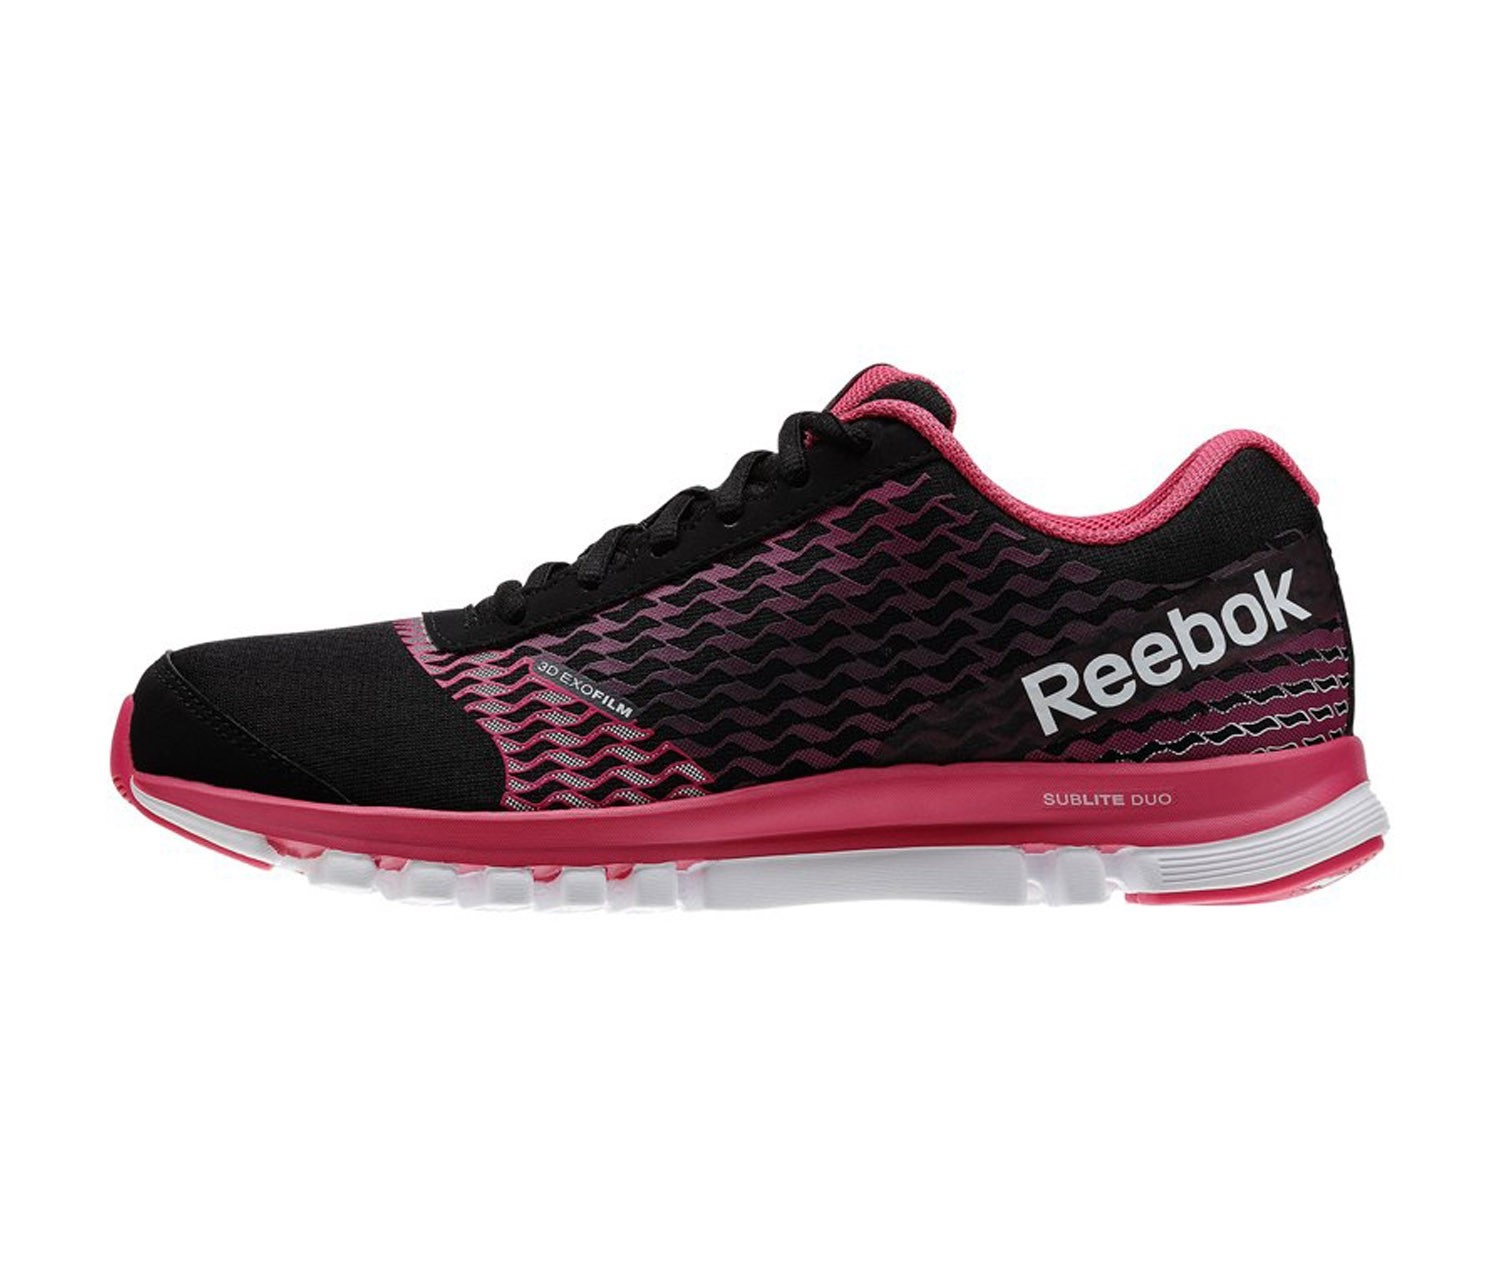 7ffd94a9d1ee Shop Reebok Reebok Women s SubLite Duo Instinct Running Shoe